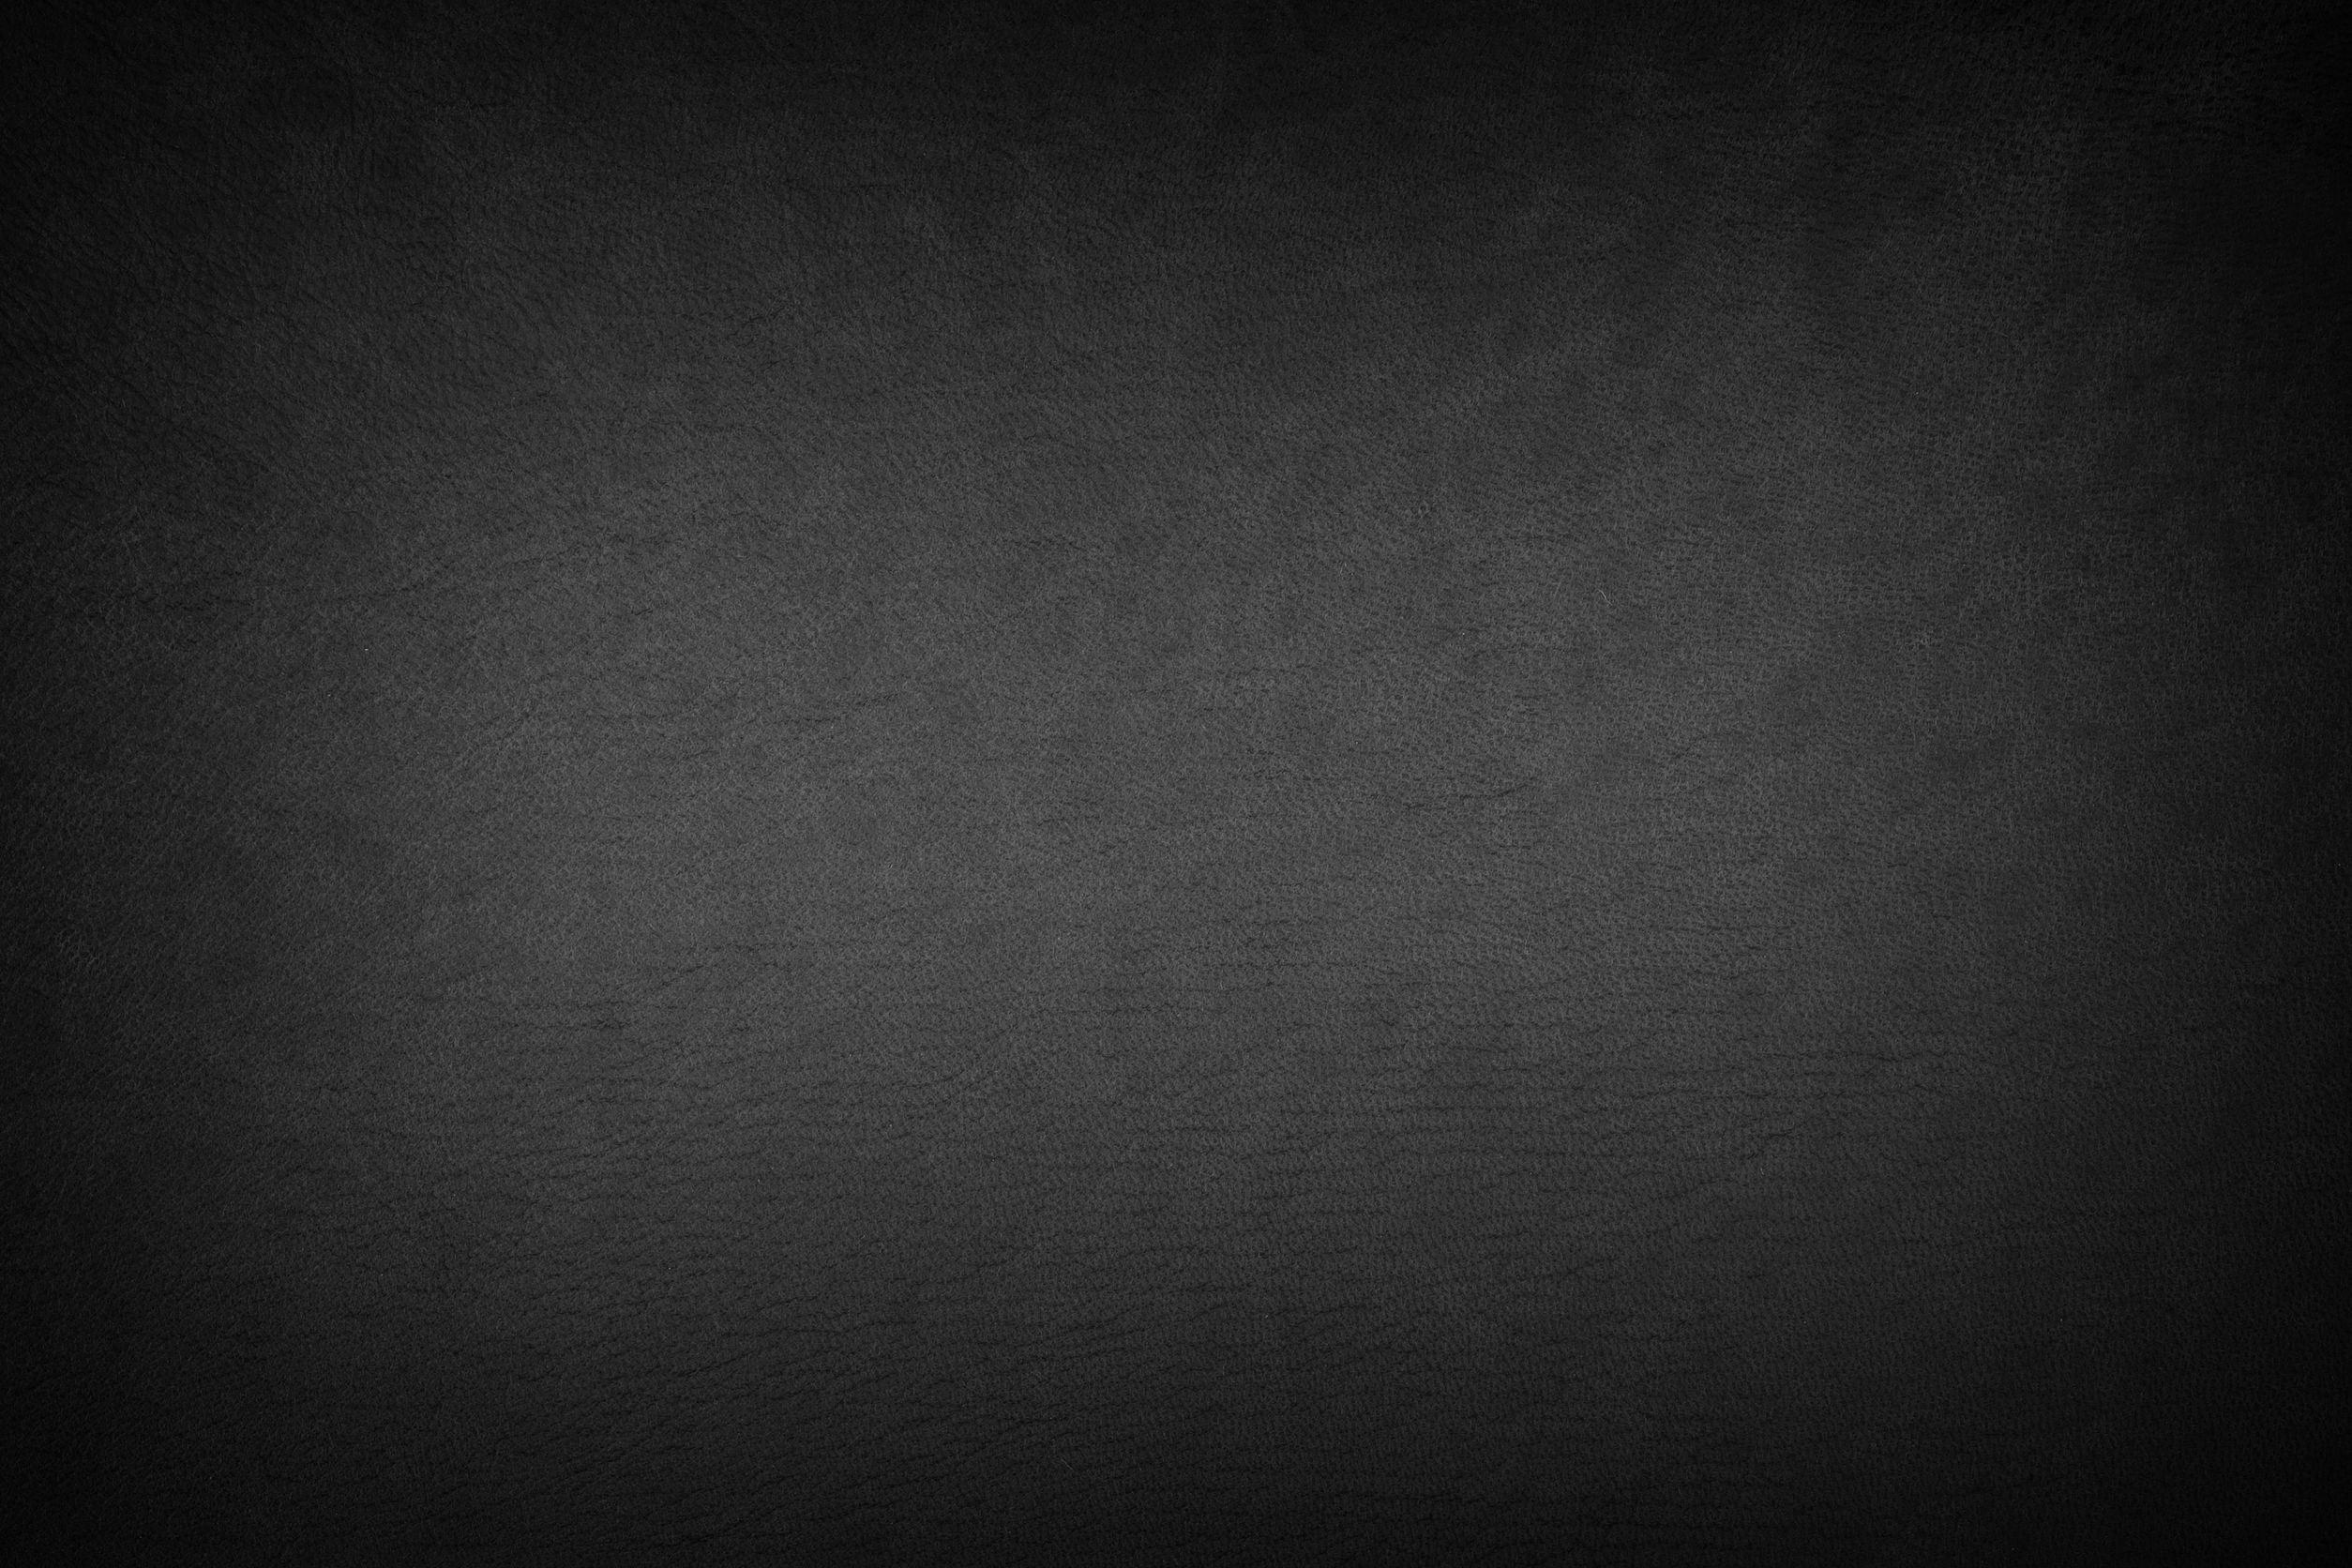 39582422 - black leather background